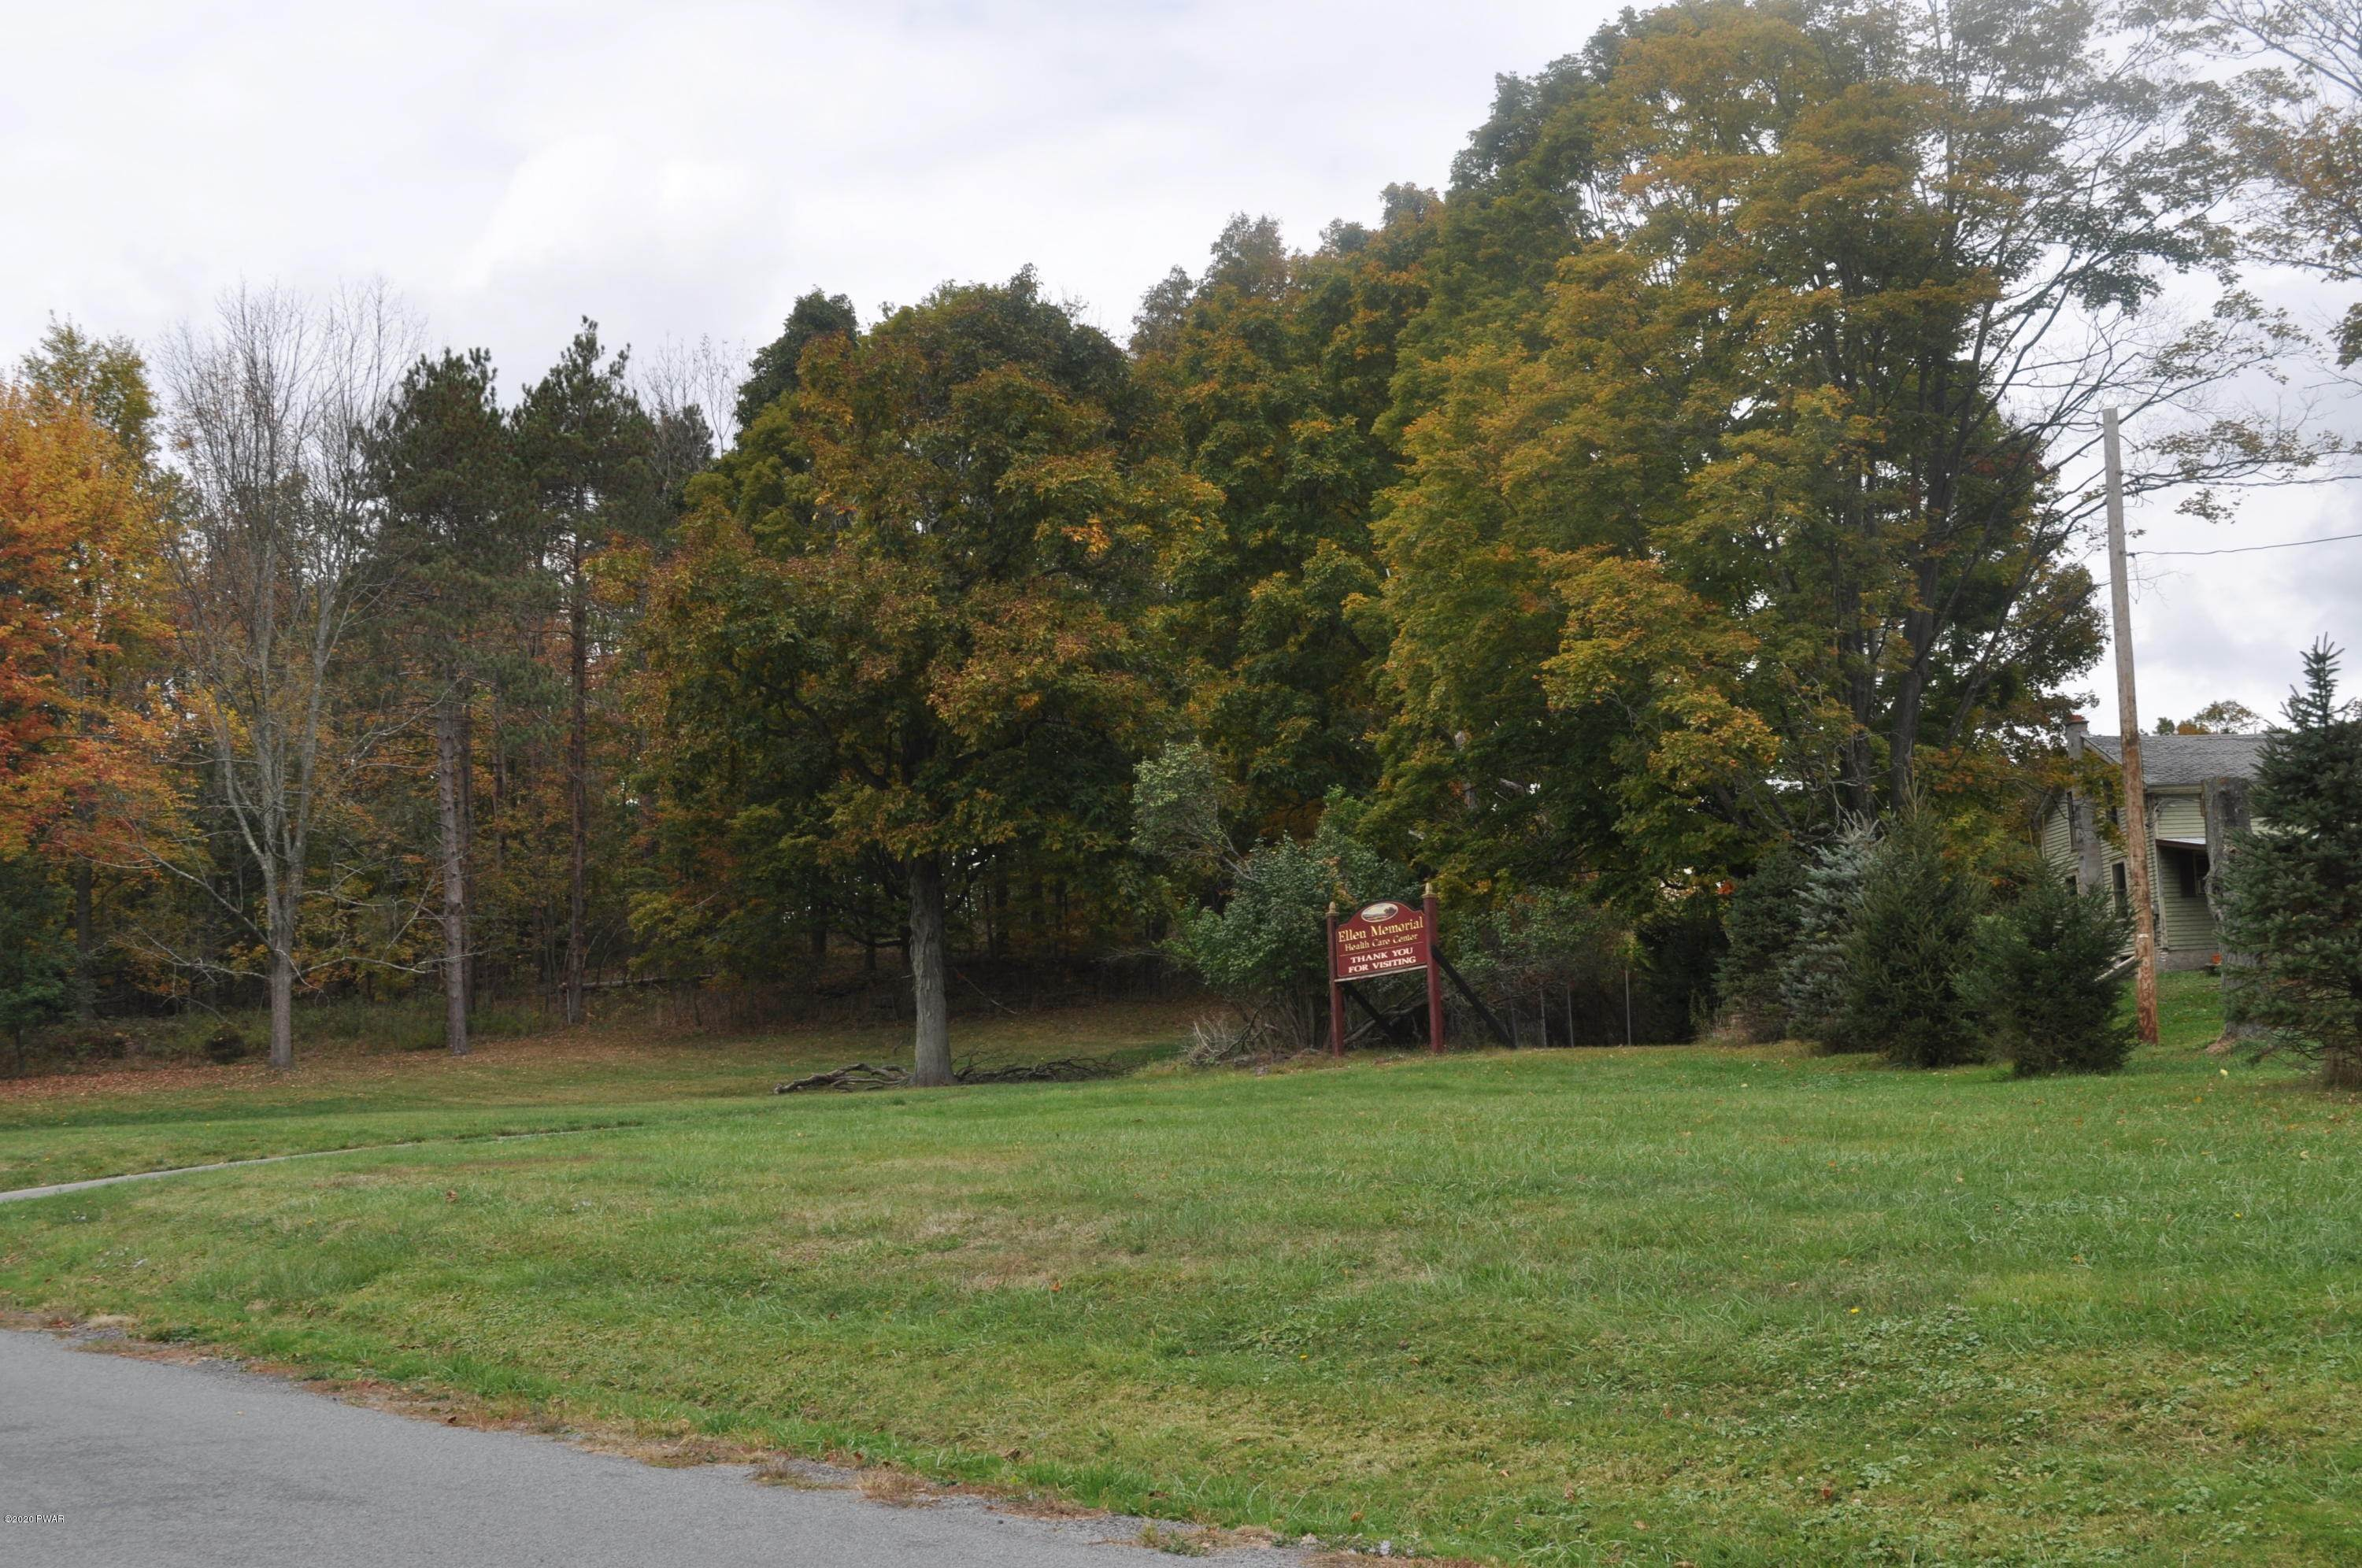 Property for Sale at 284 Golf Hill Rd Honesdale, Pennsylvania 18431 United States